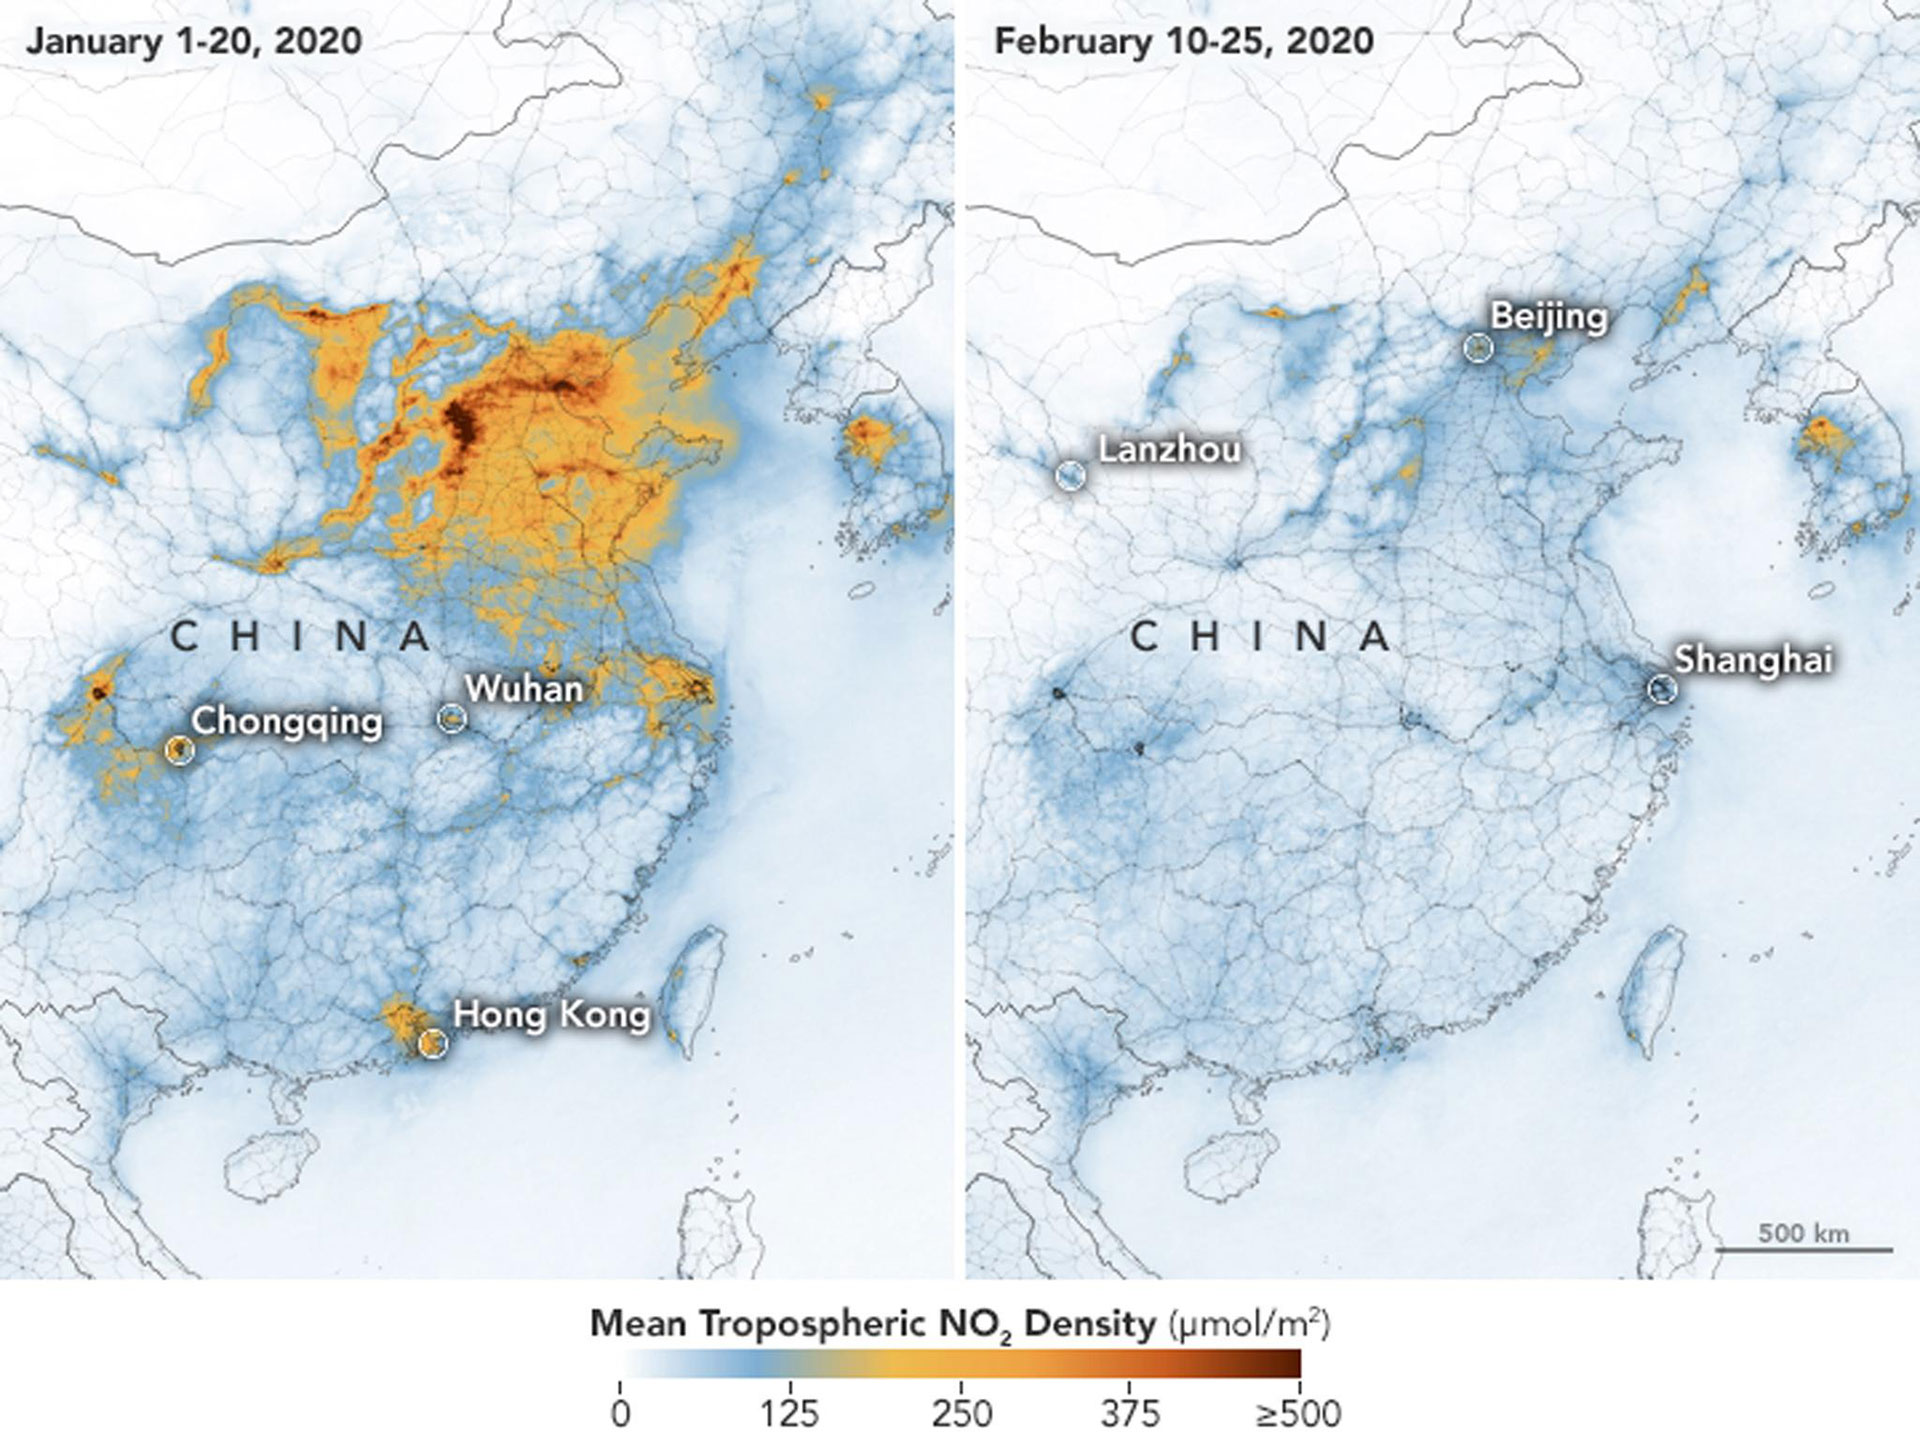 Satellite images of China show decrease in air pollution due to coronavirus epidemic